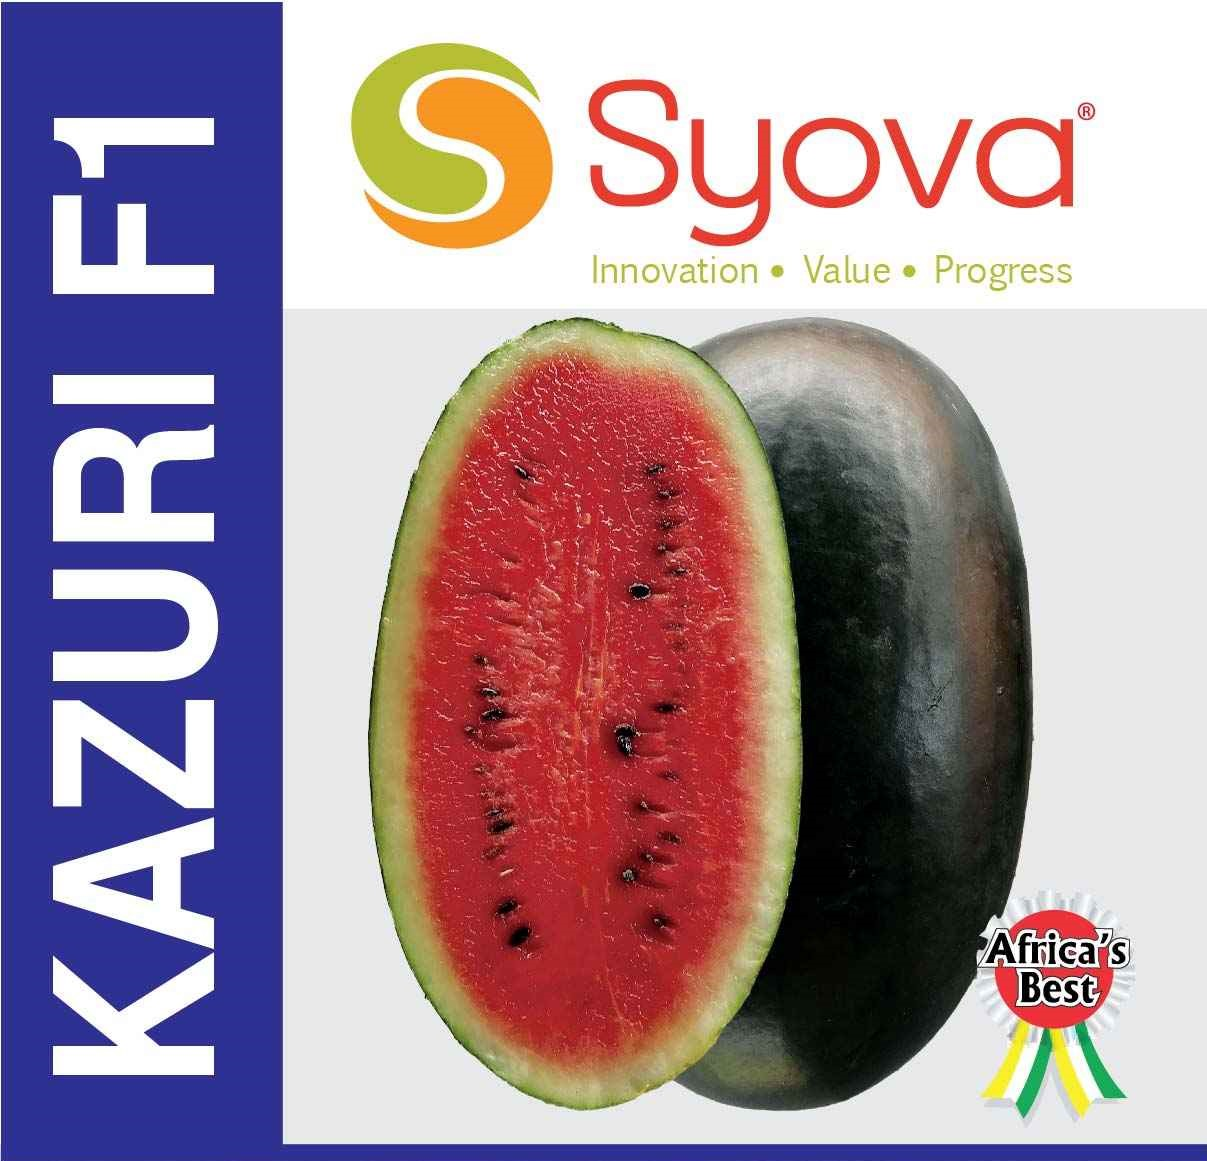 KAZURI F1 watermelon seeds (25gm)